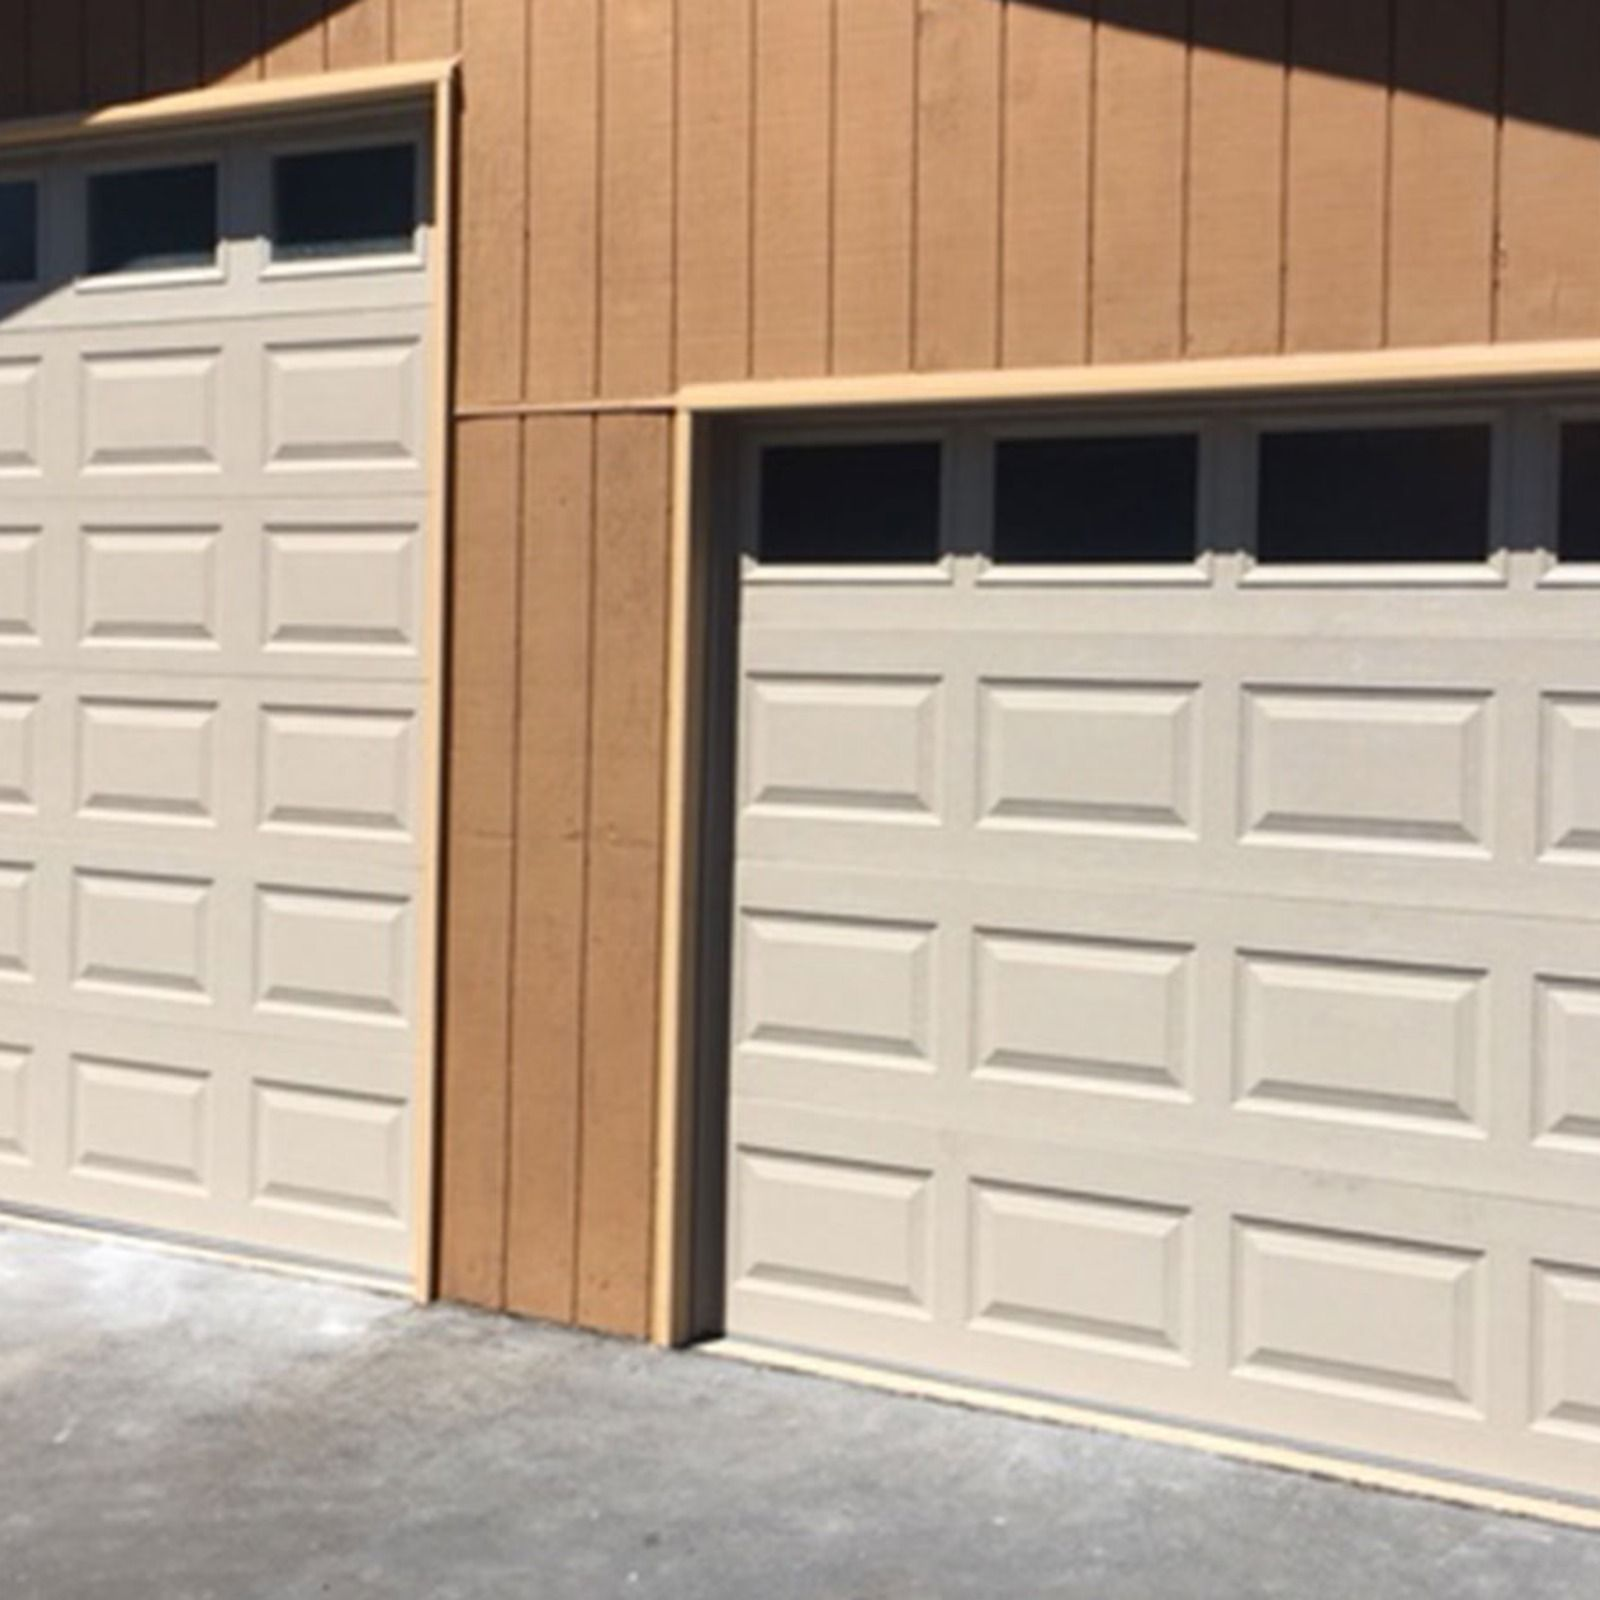 4 Northwest Modern Classic With Black Anodized Frame And Satin Etched Glass Garage Door Styles Garage Doors Unique Garage Doors